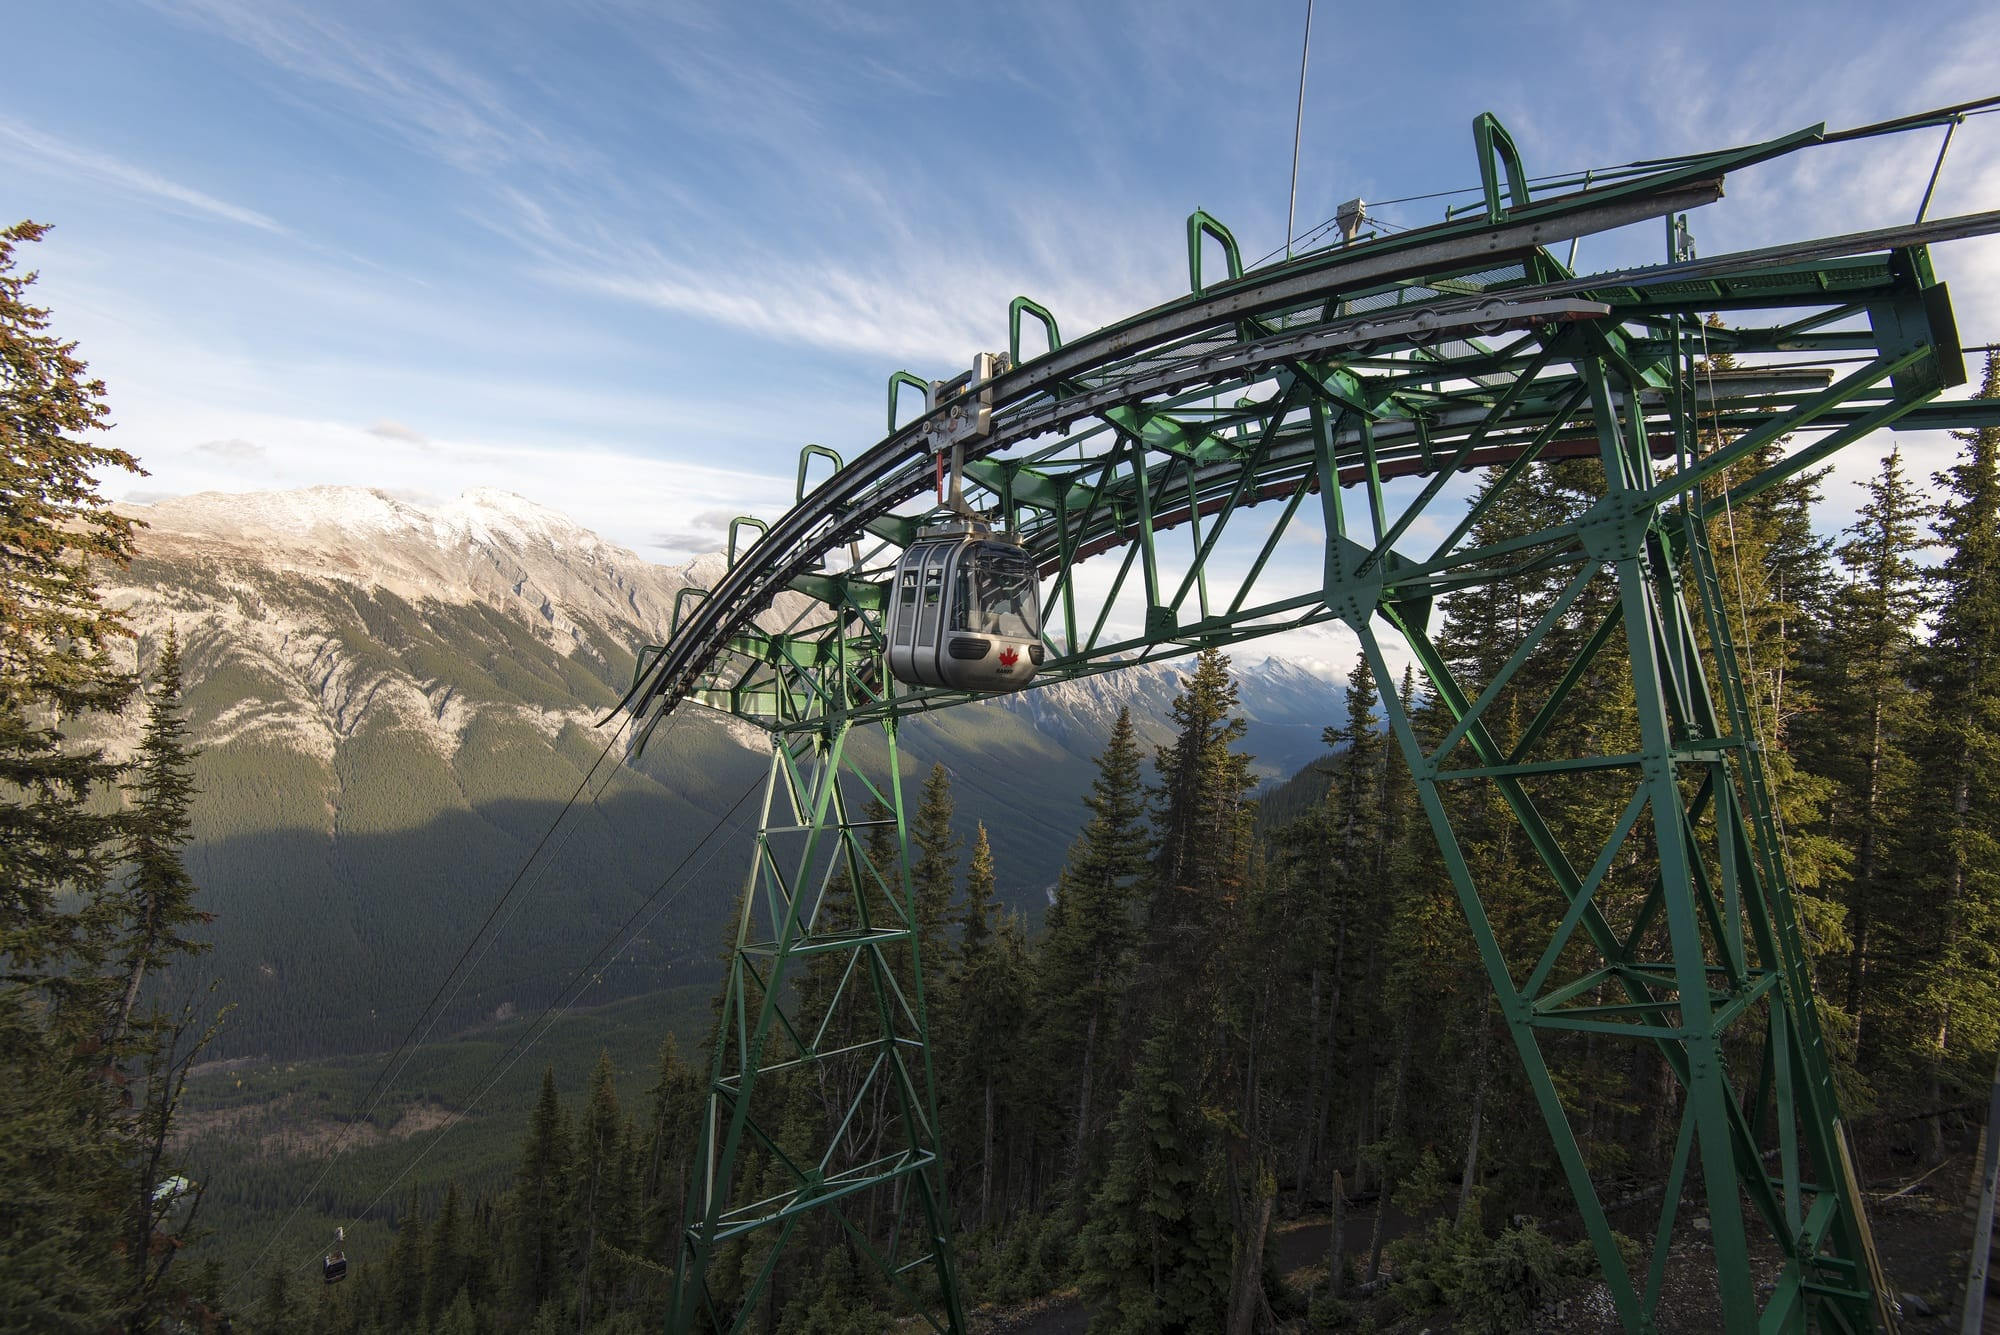 Ride the Banff Gondola with the kids to take in the beauty of Banff from Sulpher Mountain